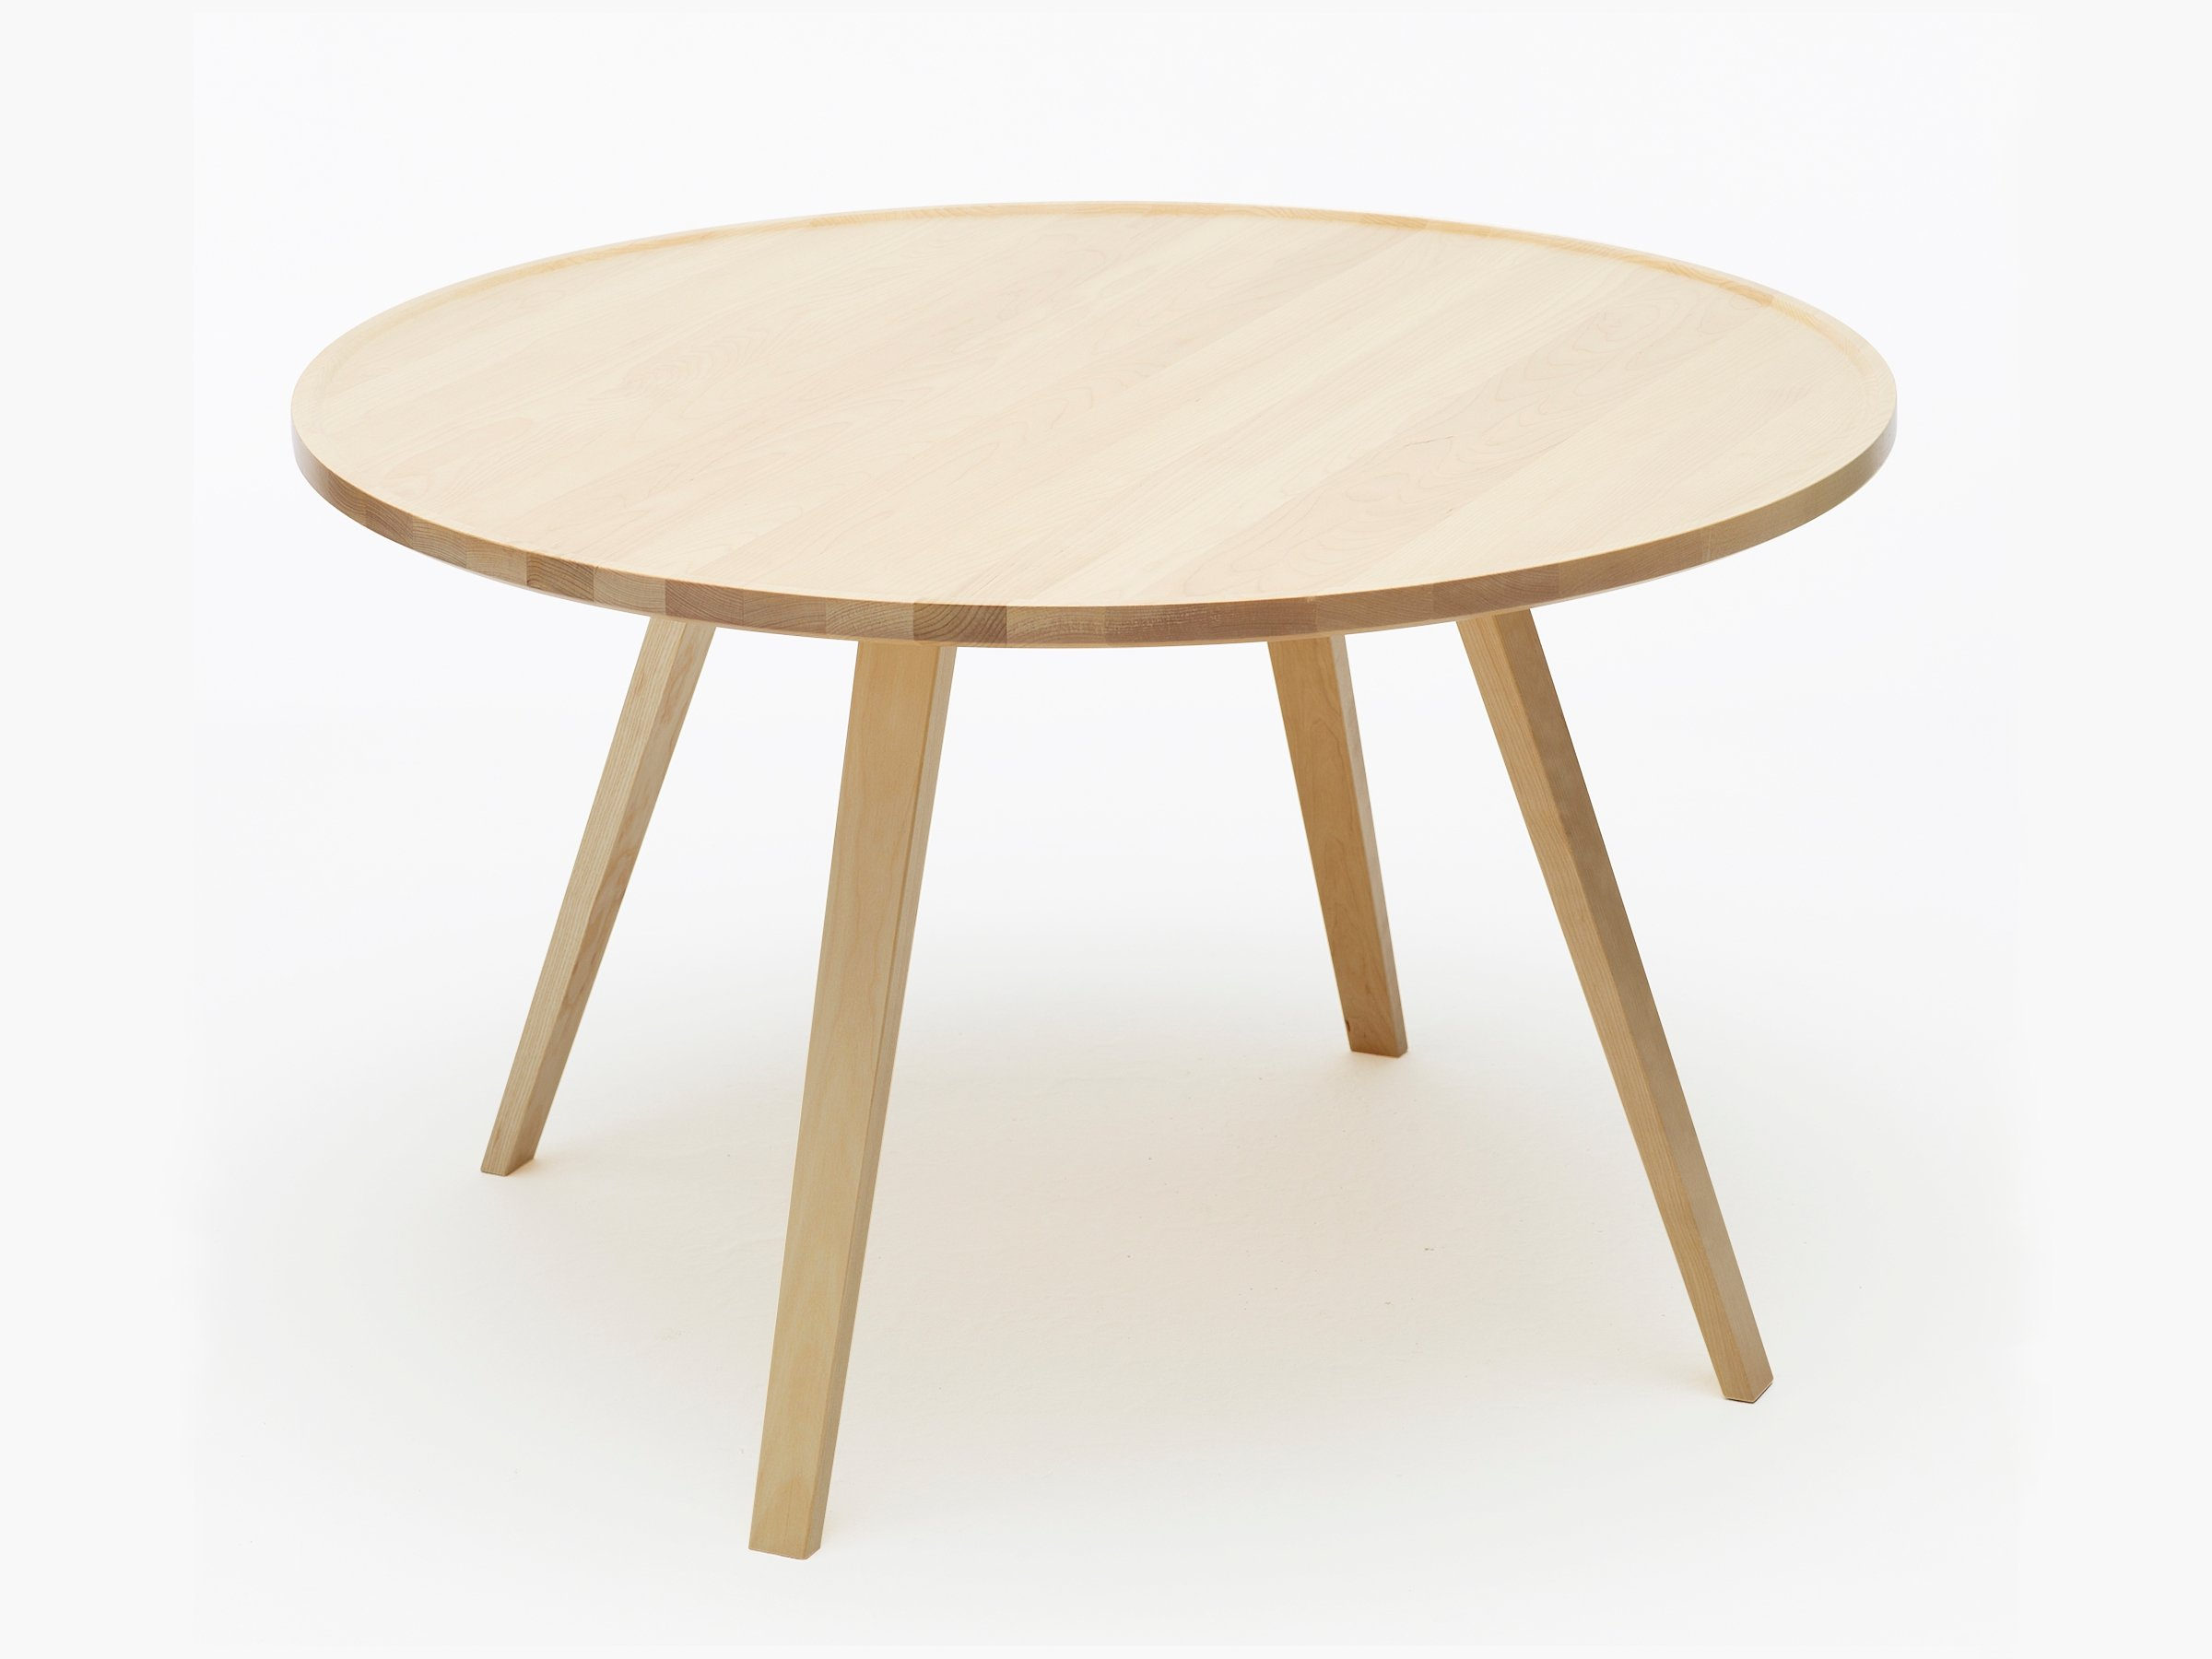 Mill table basse ronde by karl andersson s ner design roger persson - Table basse en bois ronde ...